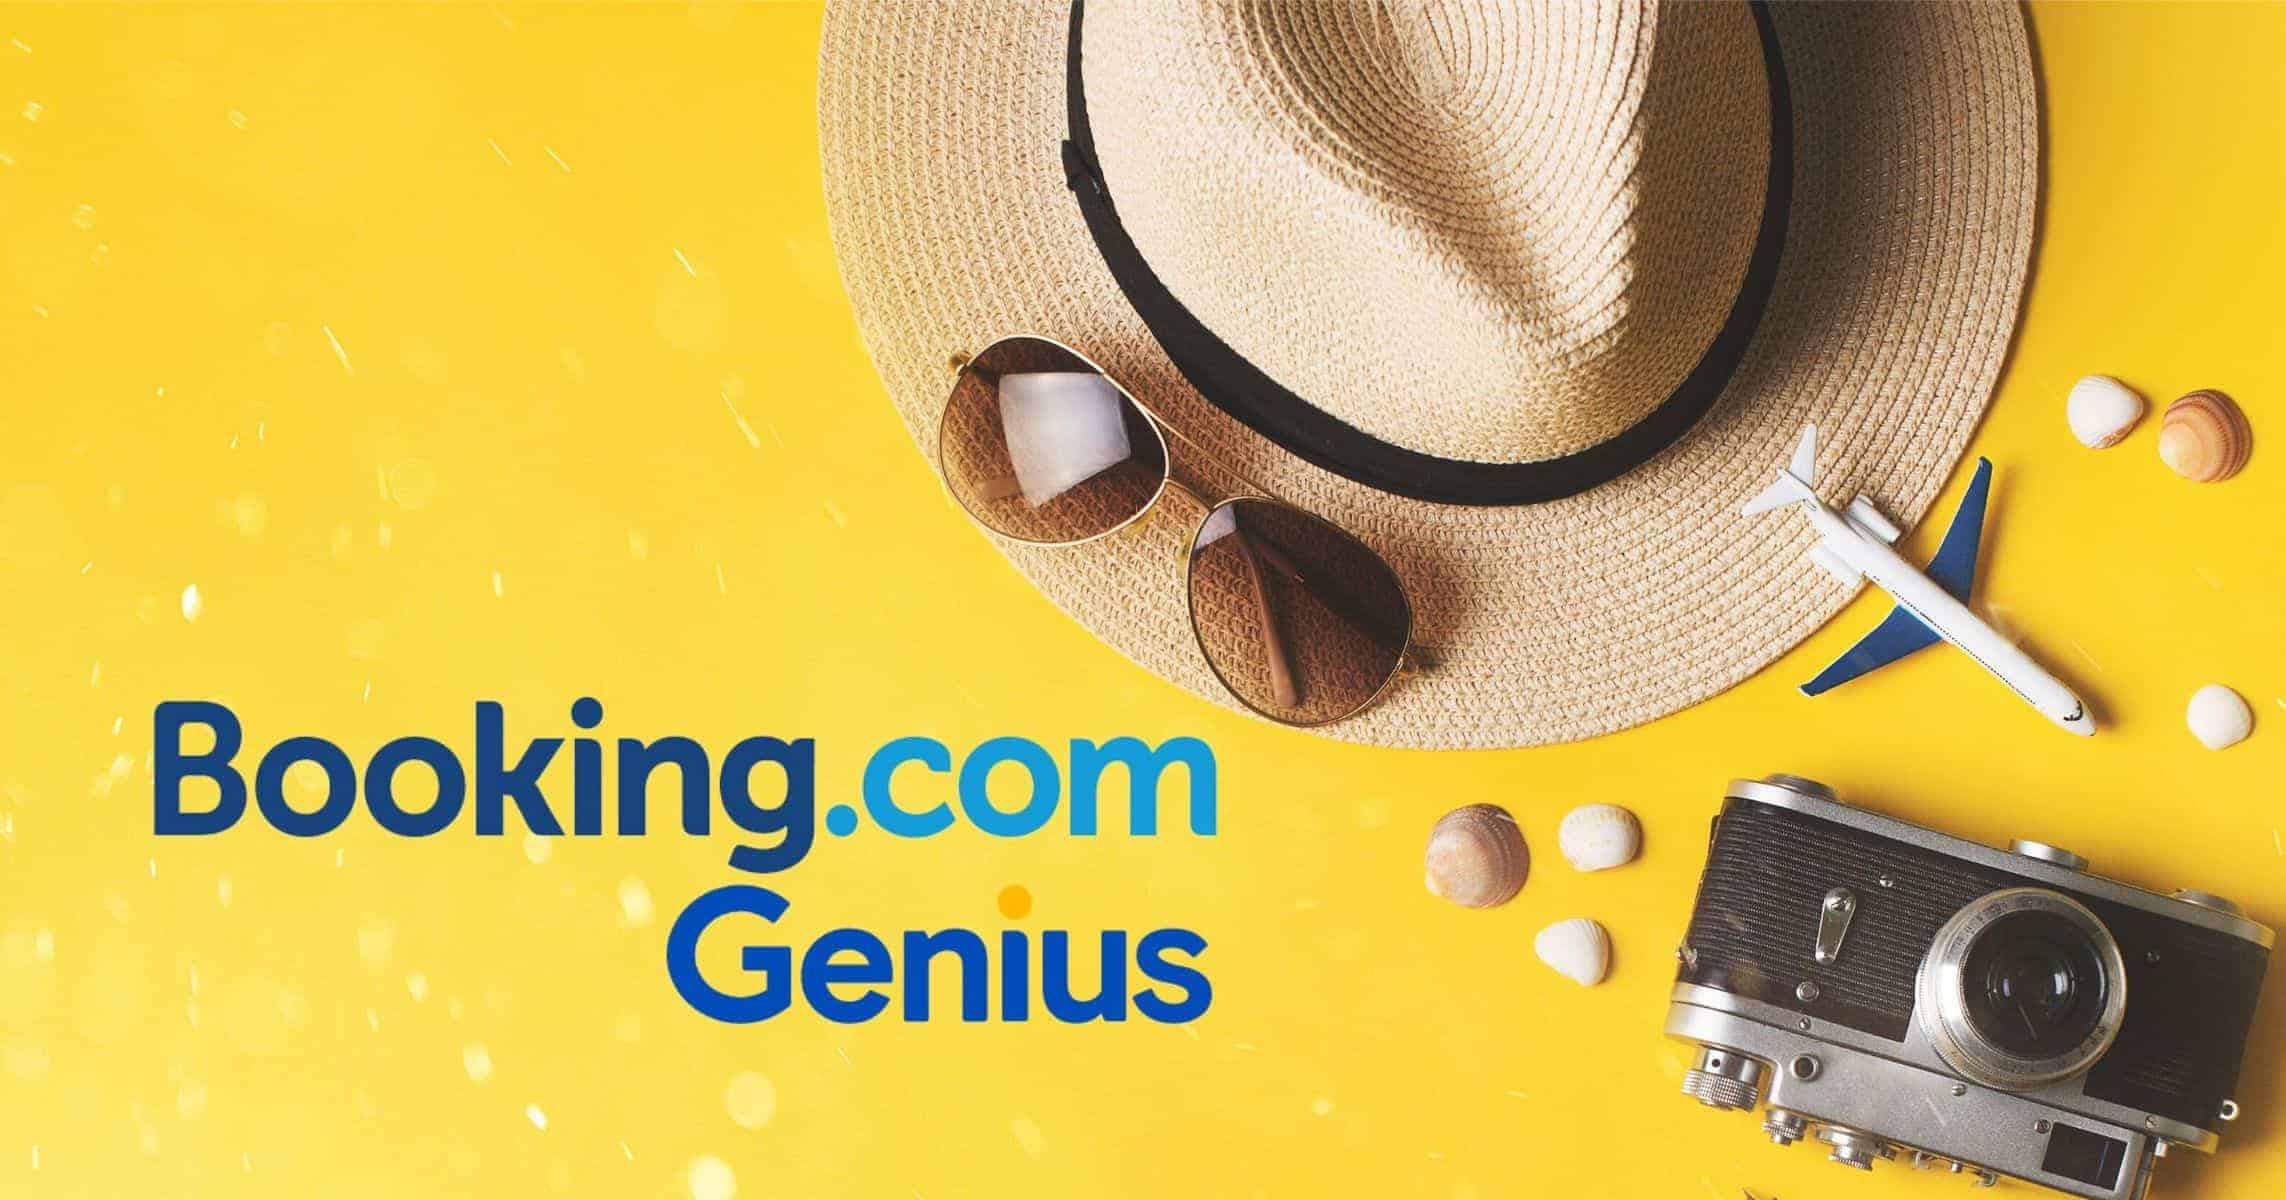 Booking.com's truly genius loyalty programme